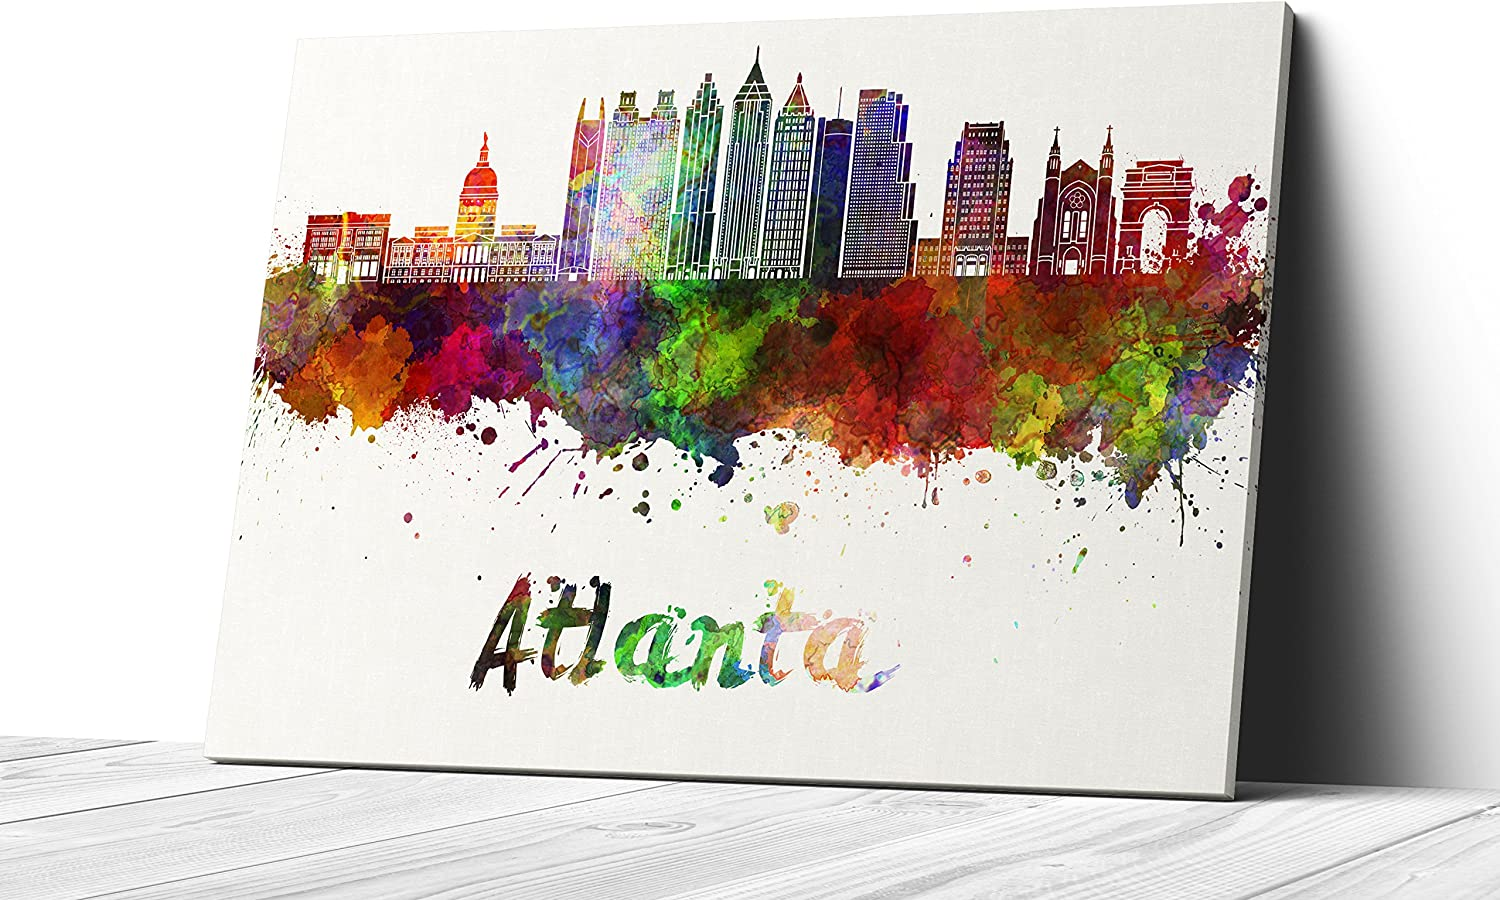 Qutenest Watercolor Atlanta City Skyline Canvas Wall Art Prints Modern Abstract Cityscape Wall Art Print Gallery Wrapped Giclee Canvas Art Home Decor Office Decor Ready To Hang Atlanta Posters Prints